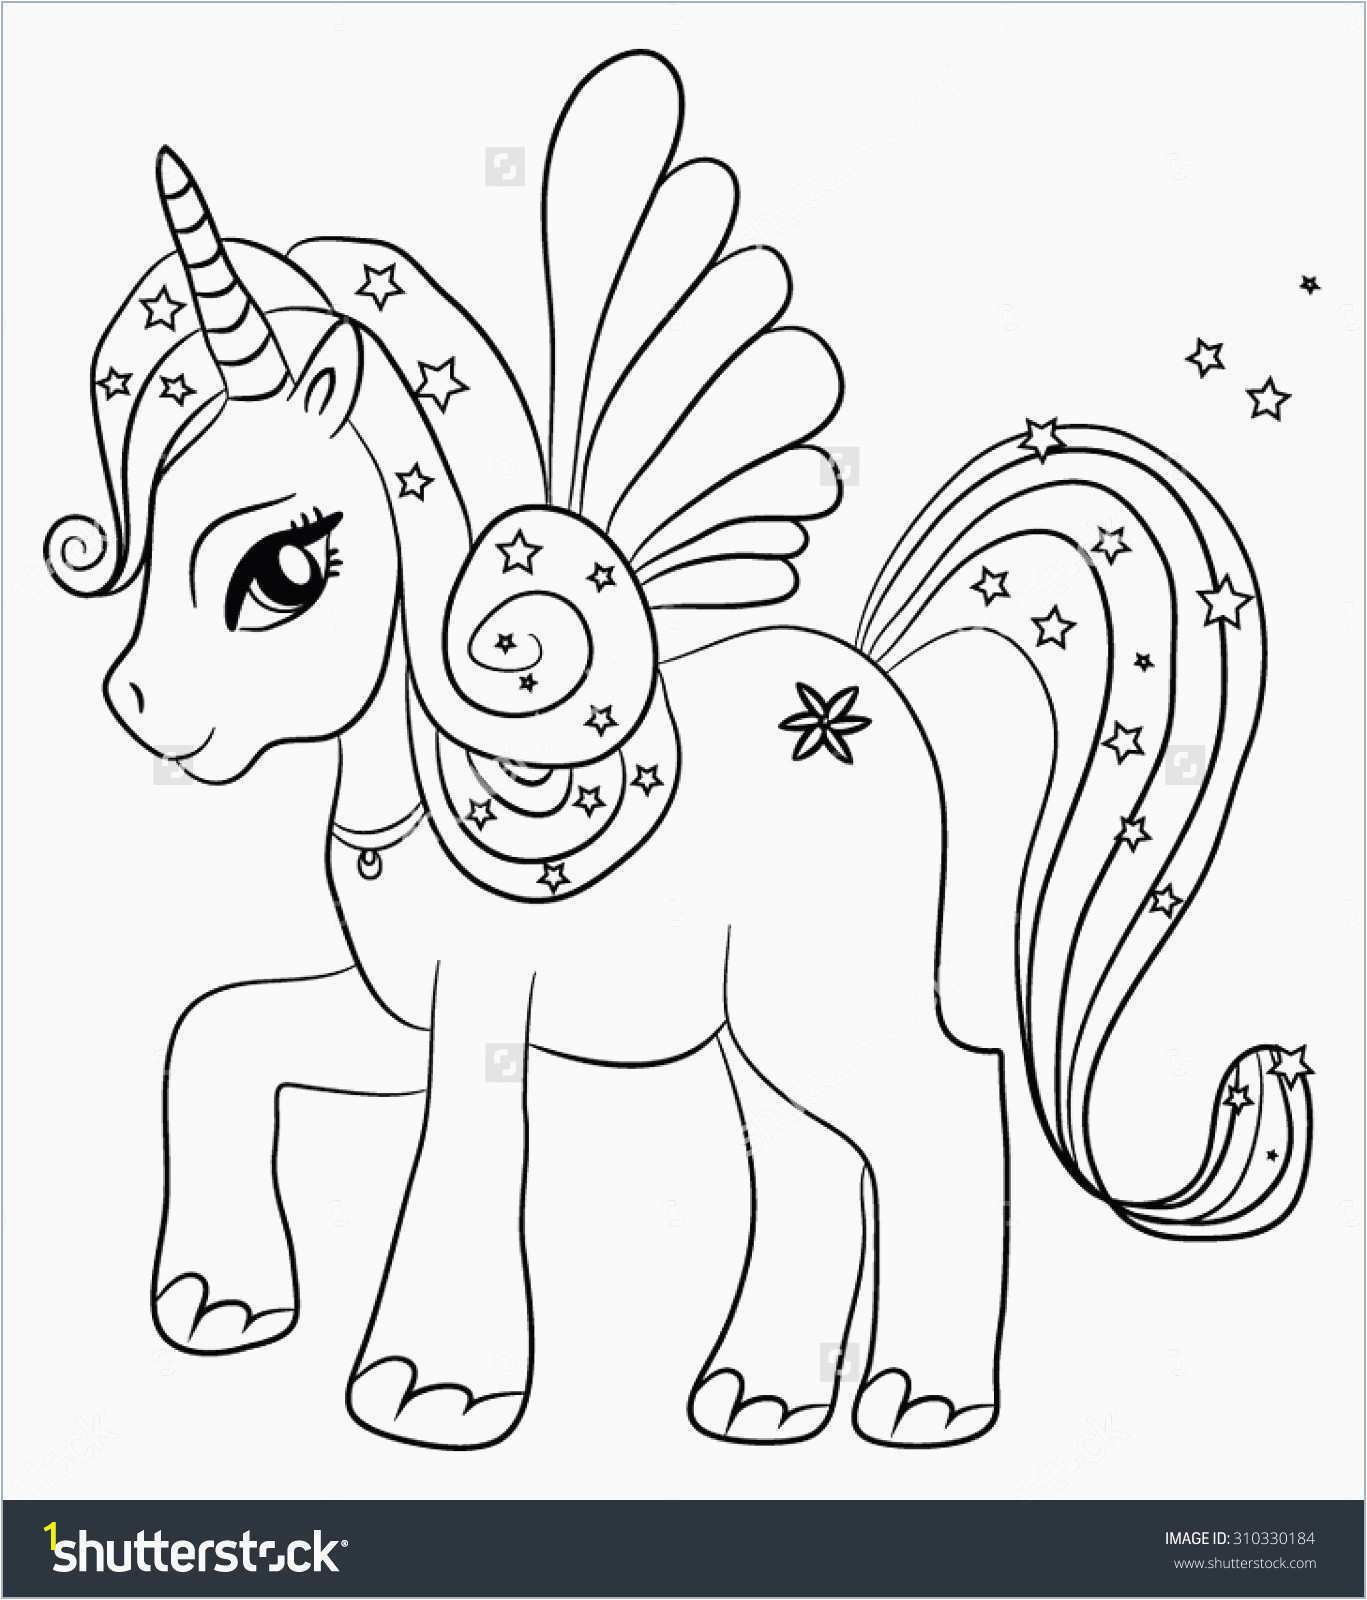 fairy unicorn coloring pages with printable book page awesome picture colouring sheets inspirations emoji color free pictures for kids by number cute of